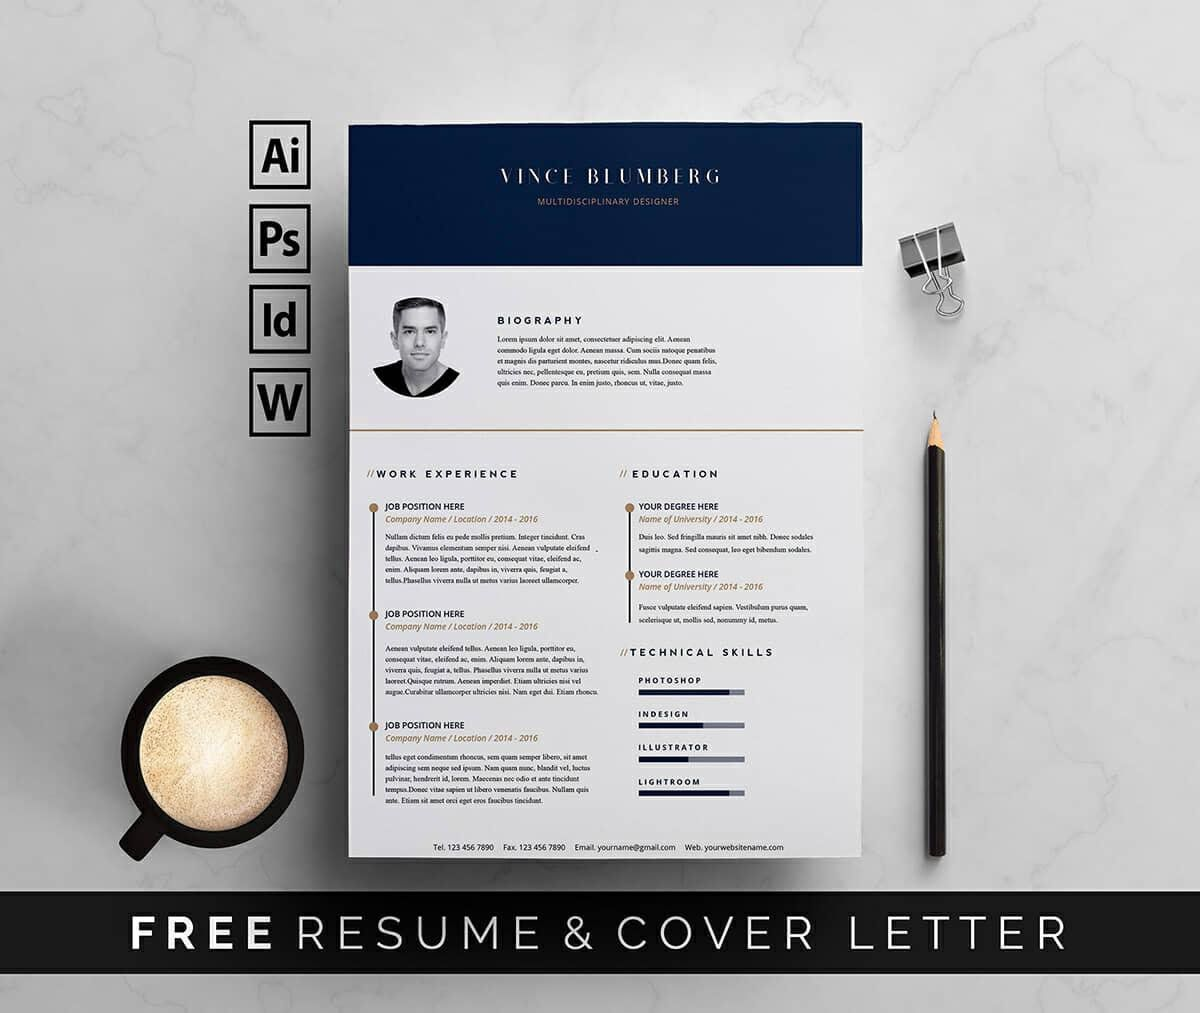 010 Astounding Word Resume Template Free Sample  Fresher Format Download 2020 MFull